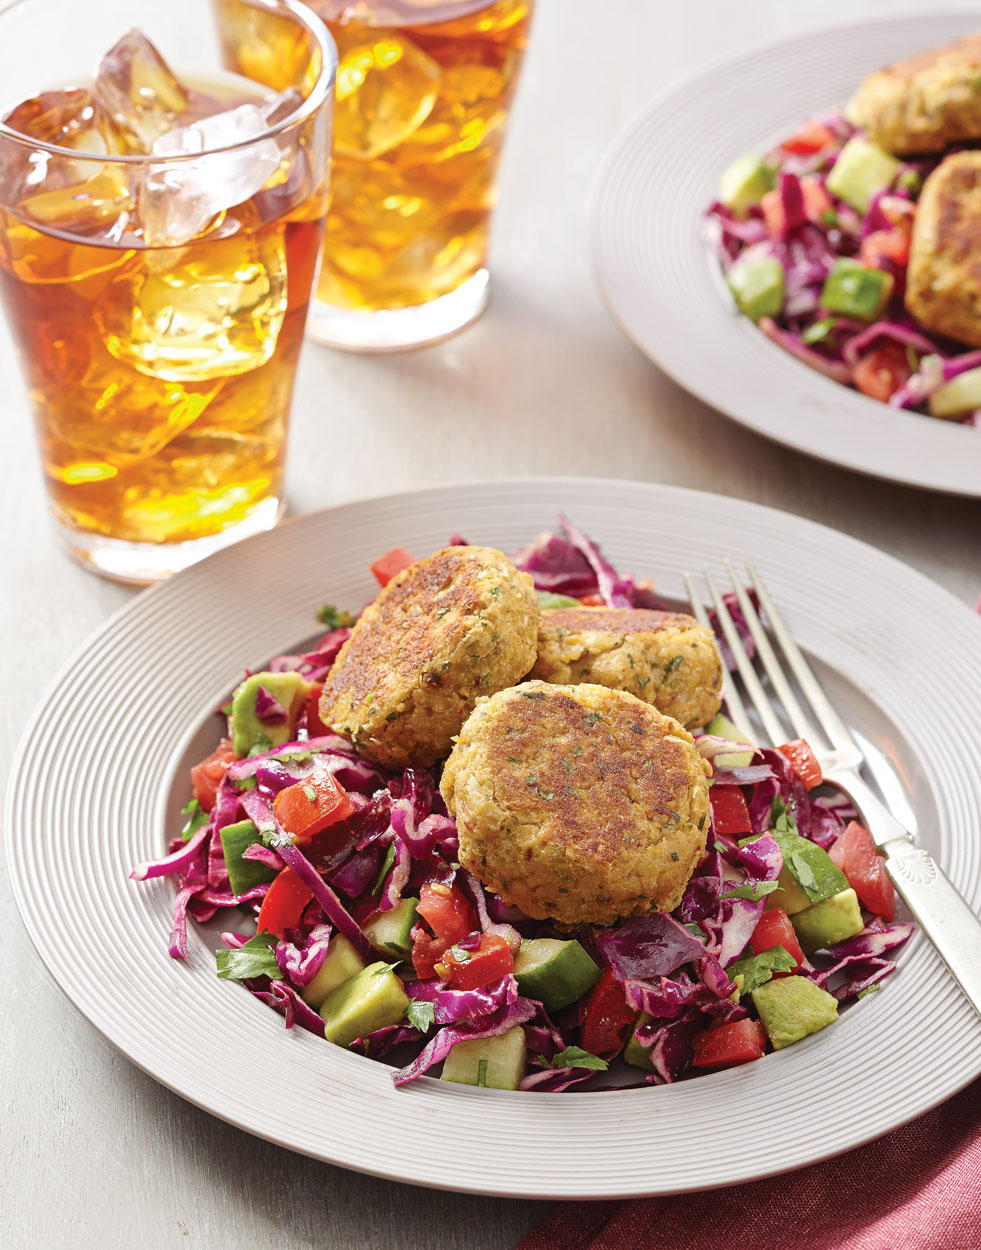 Red Cabbage Salad Bowls with Chickpea Cakes